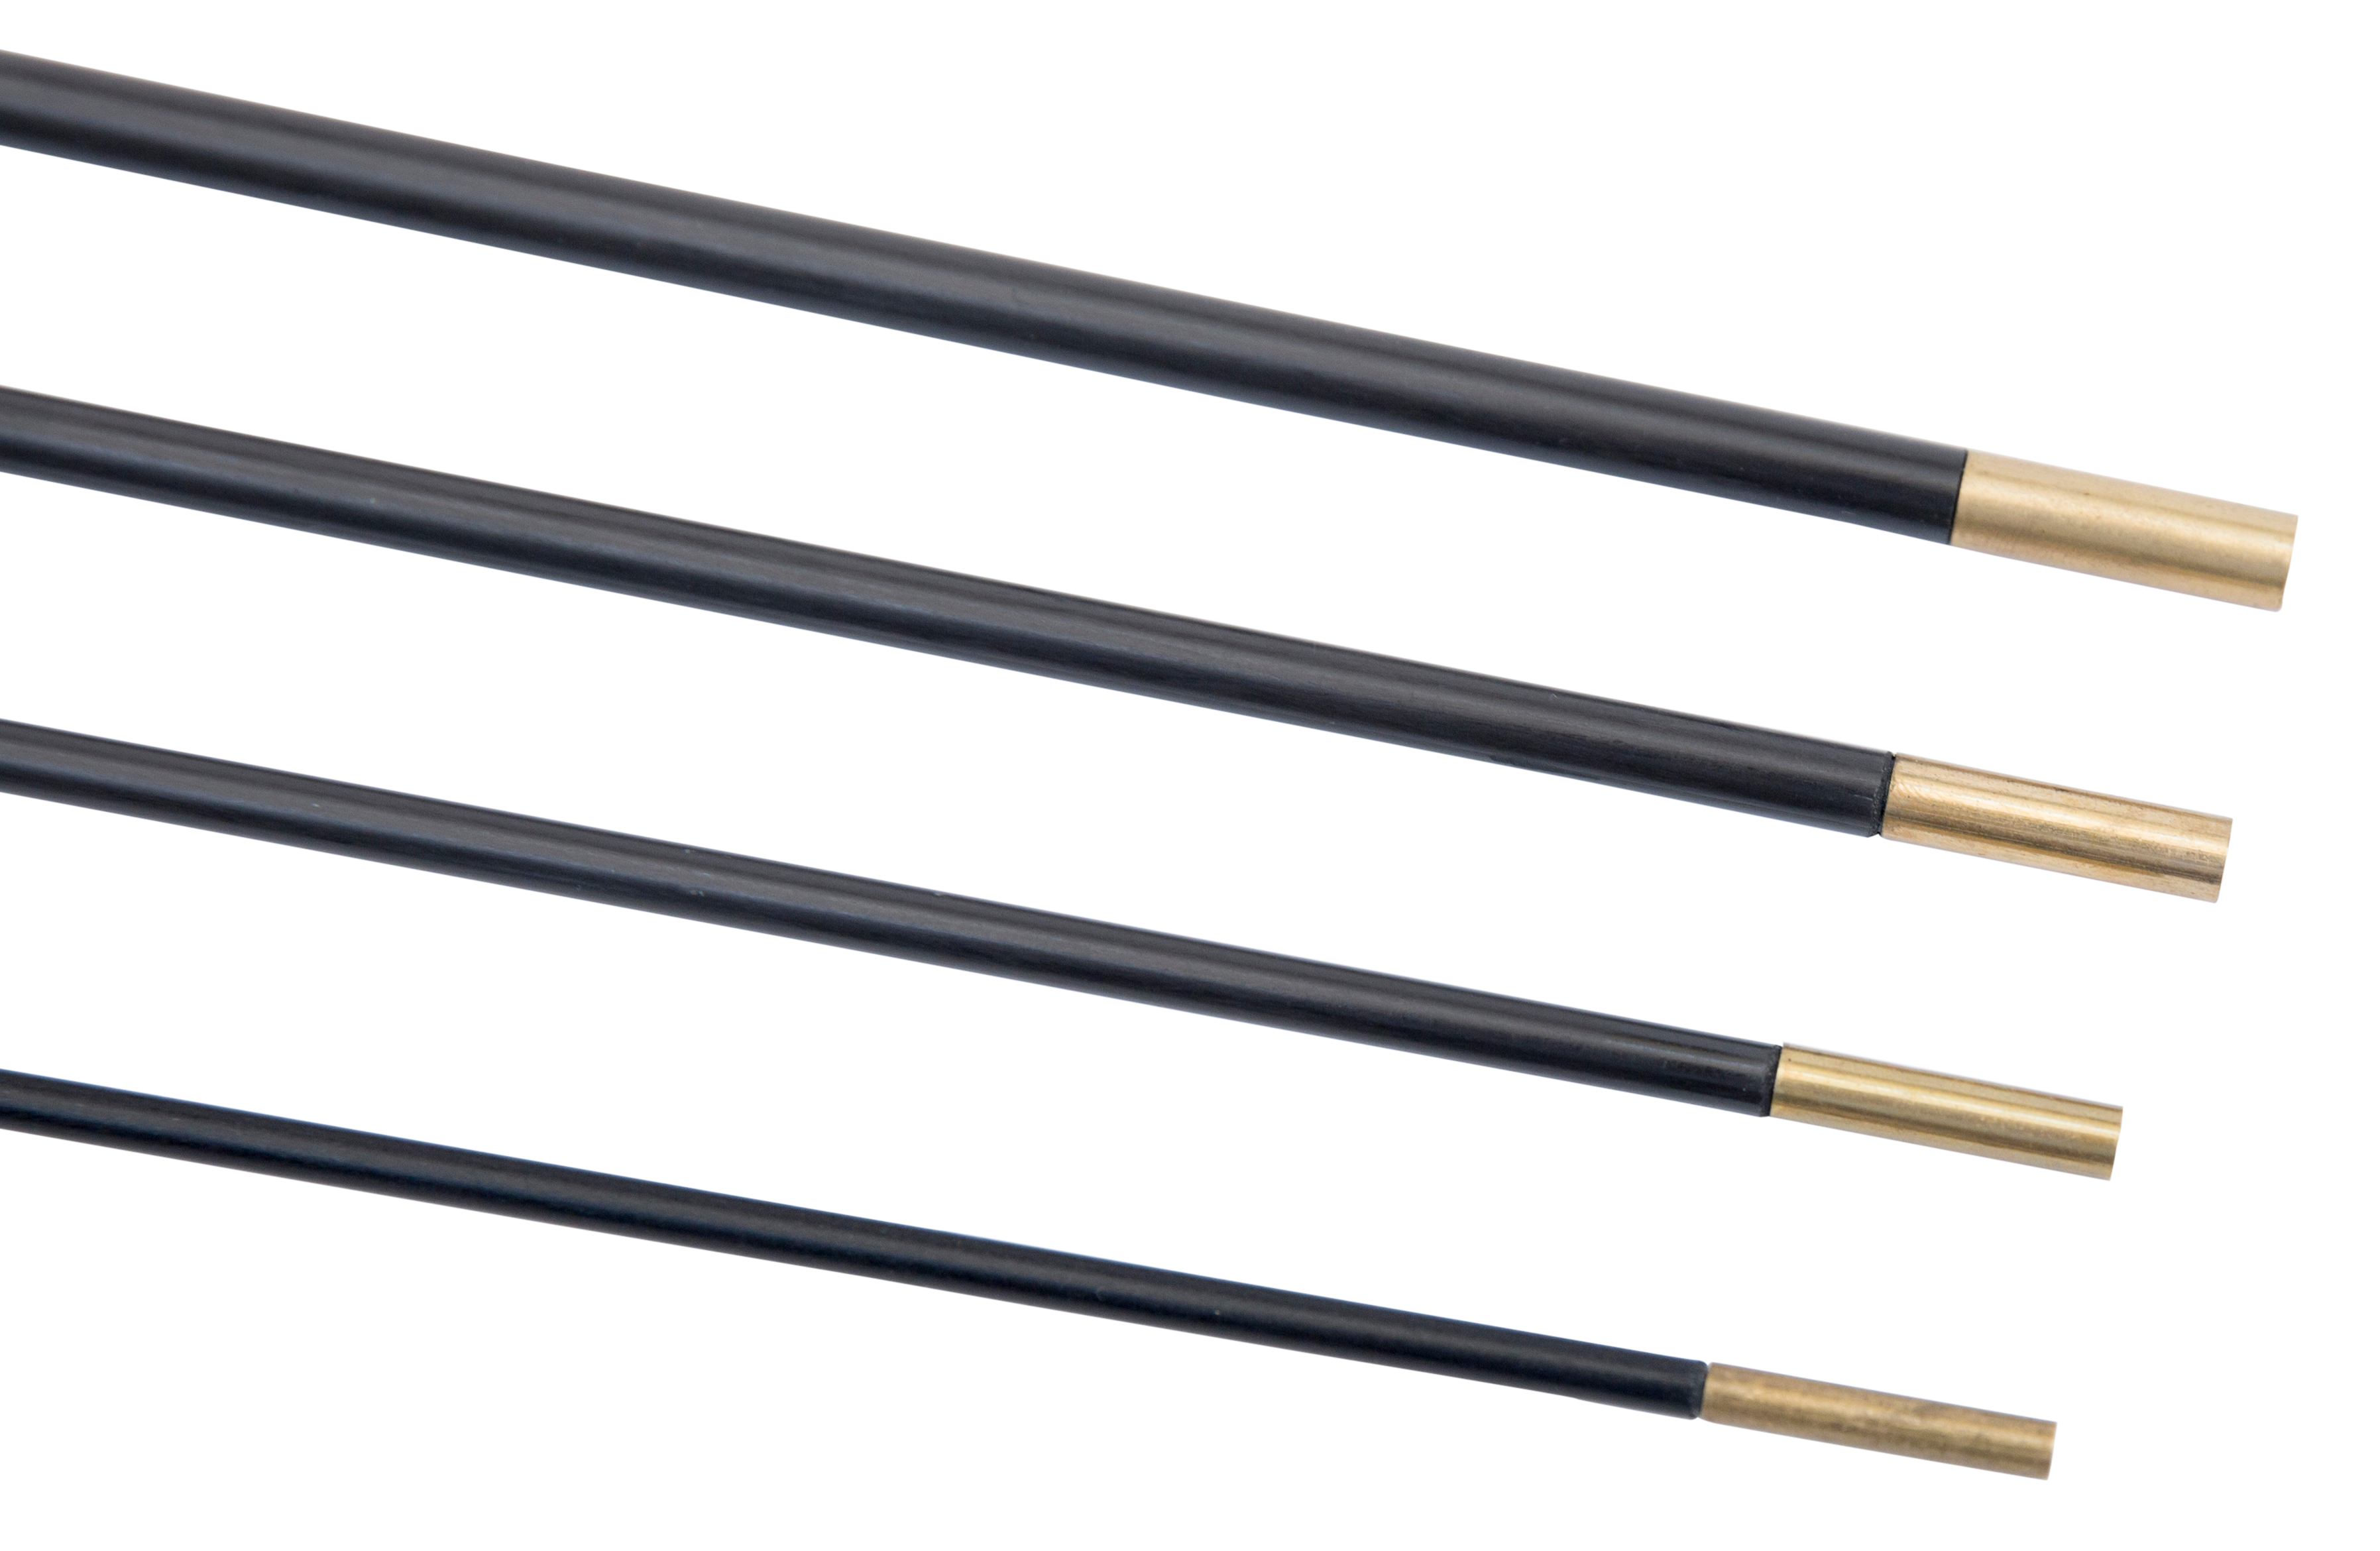 DAC 38244 Carbon Cleaning Rod 17 Cal